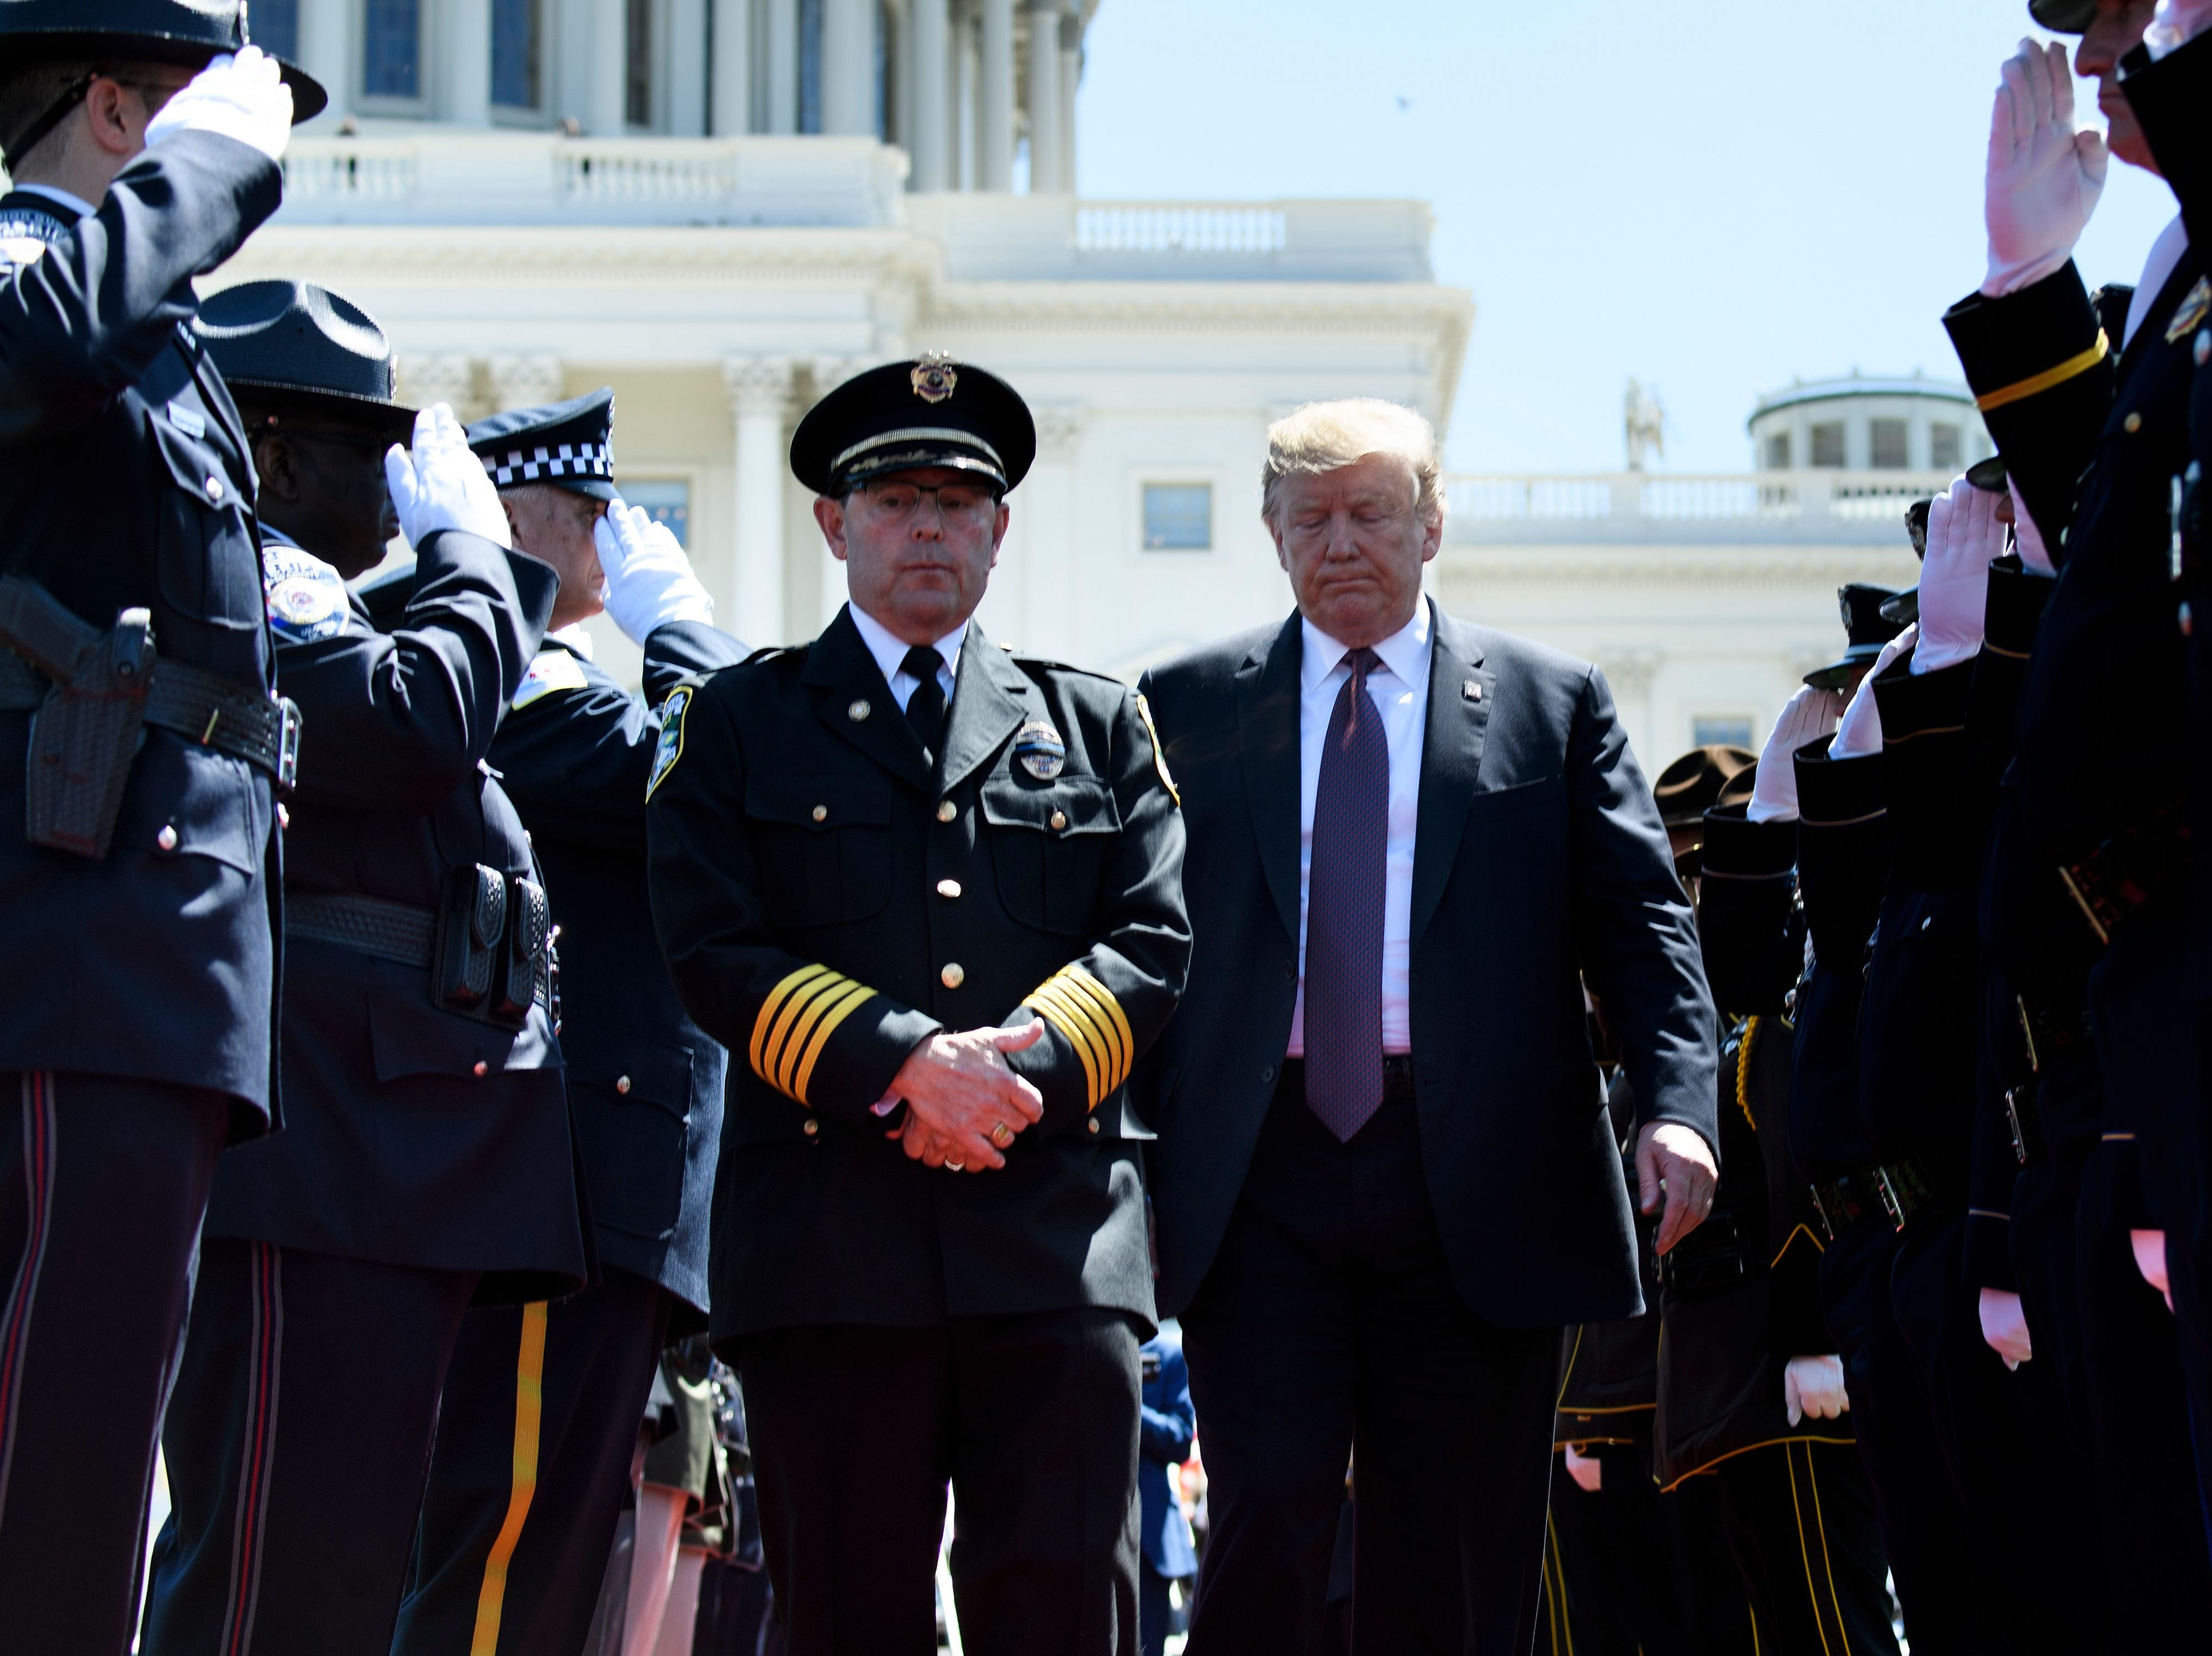 President Donald Trump arrives during the 38th Annual National Peace Officers Memorial Service on Capitol Hill